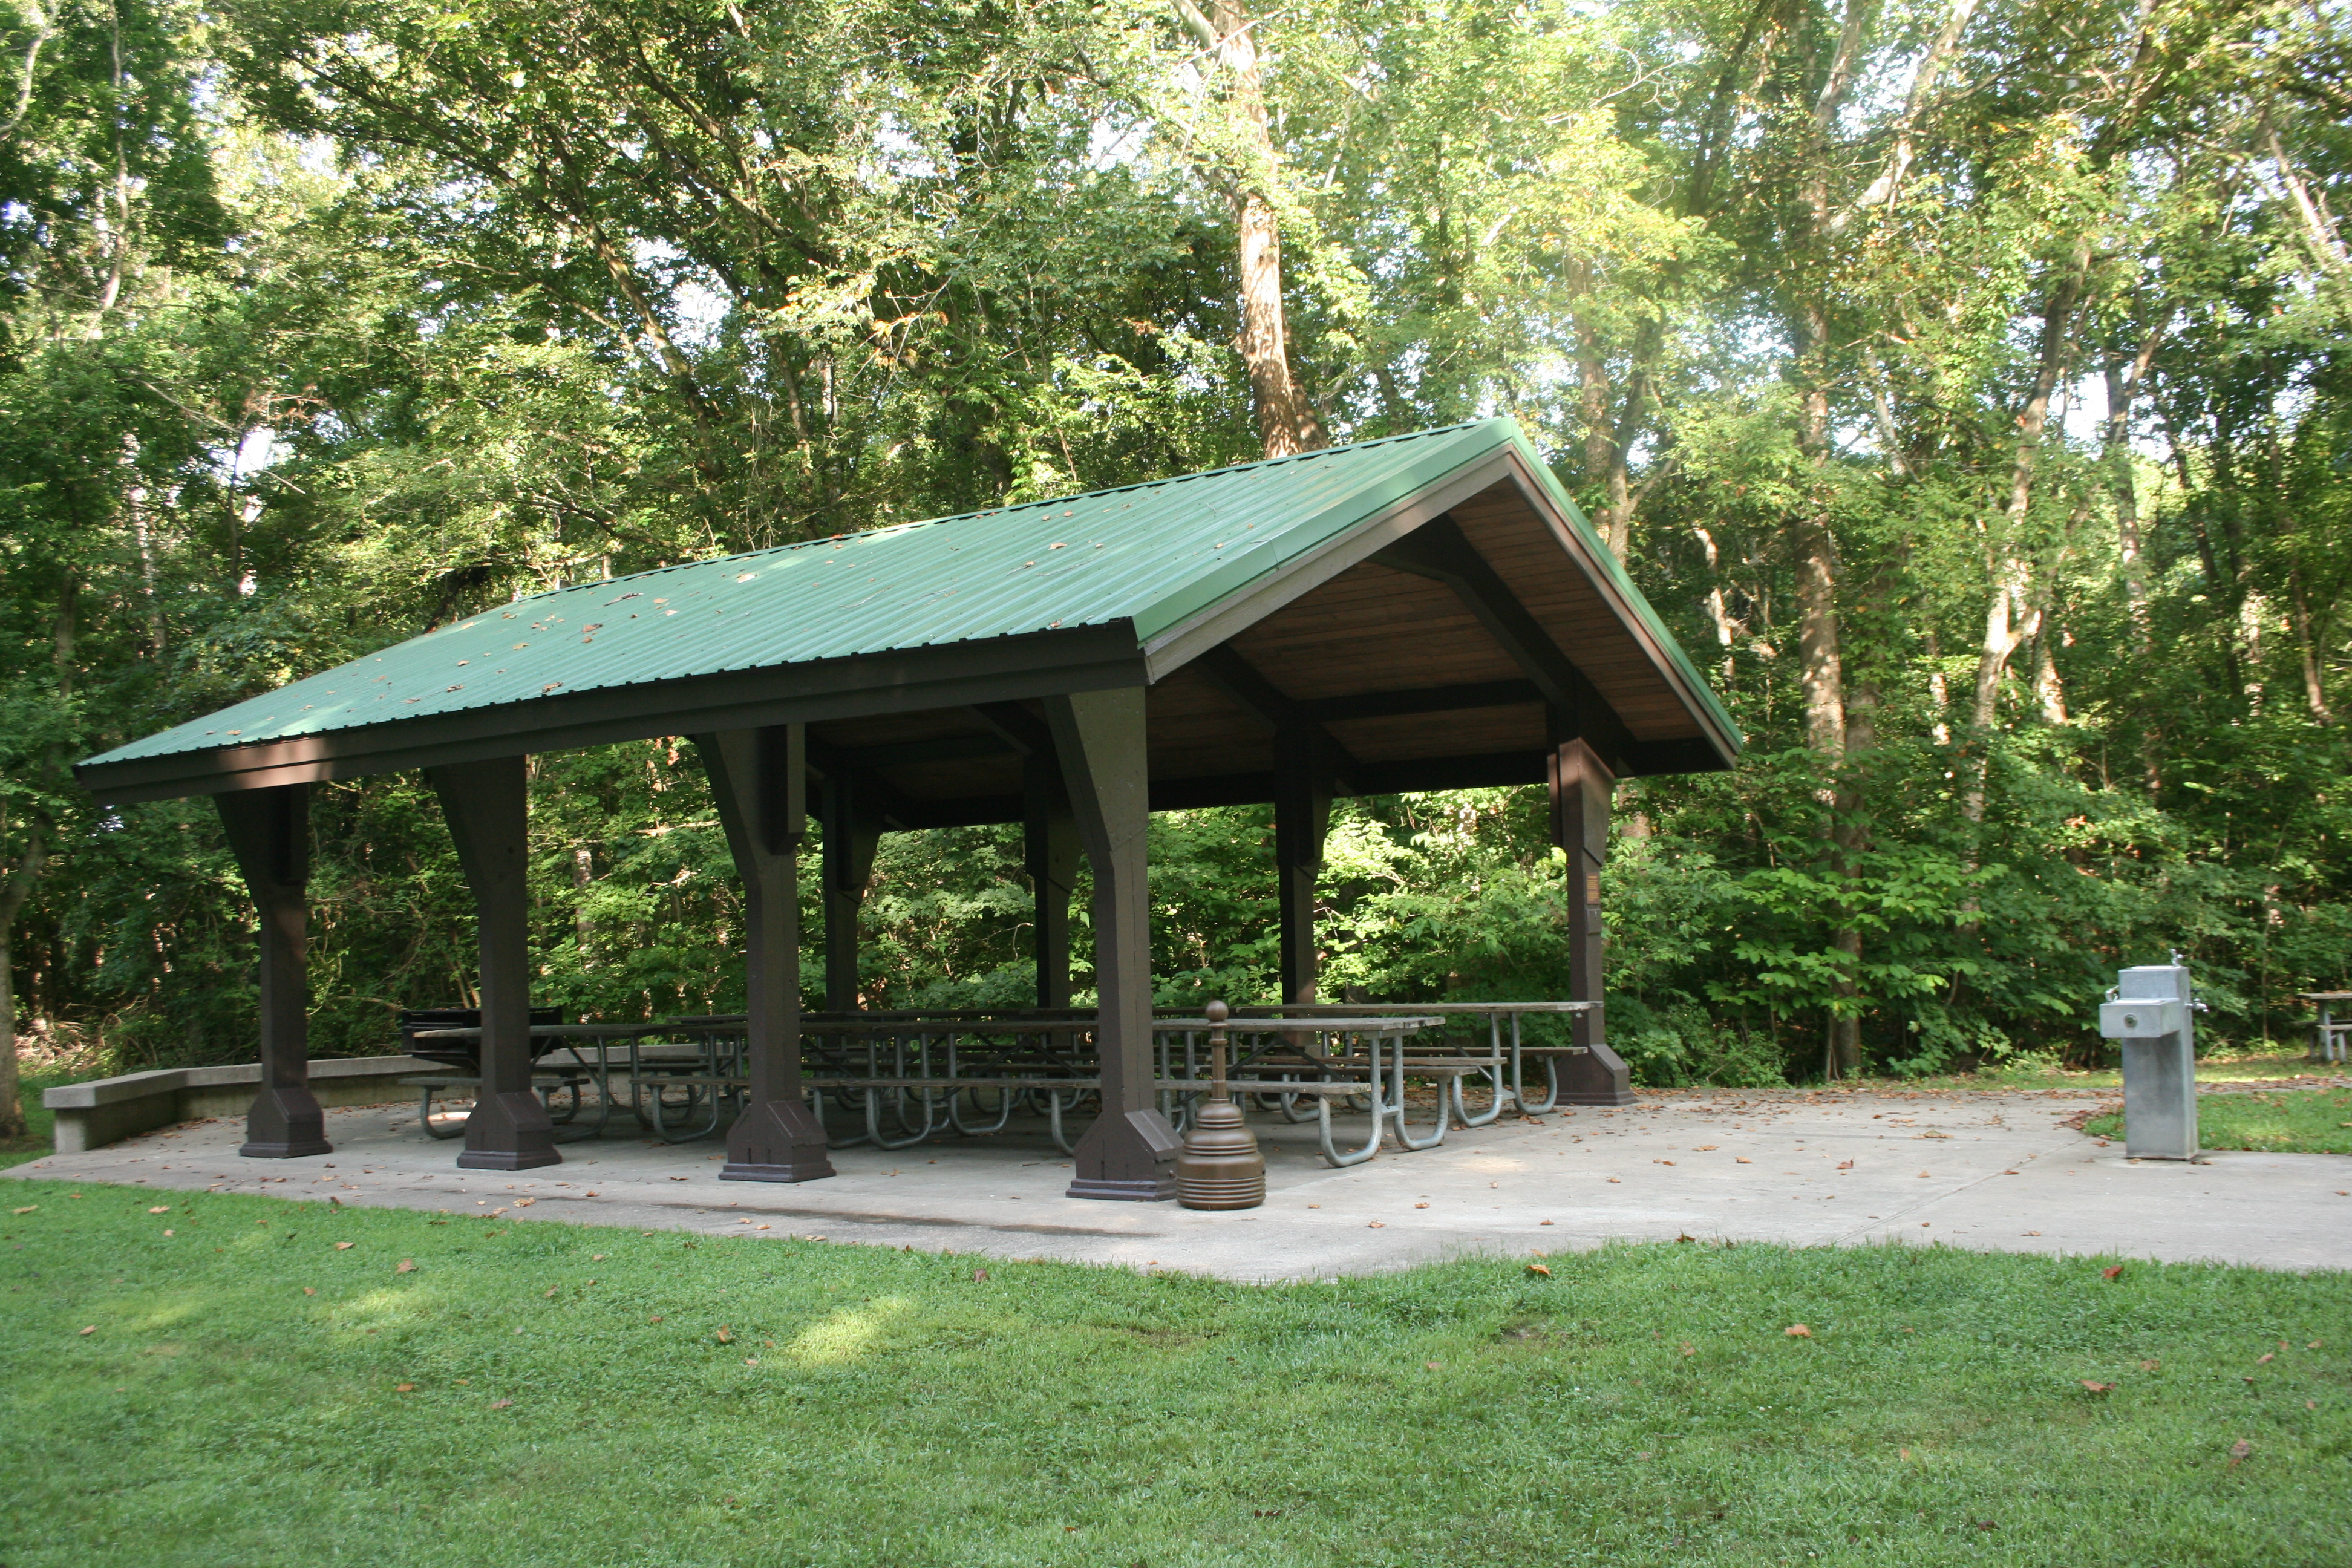 picnic shelter and water fountain